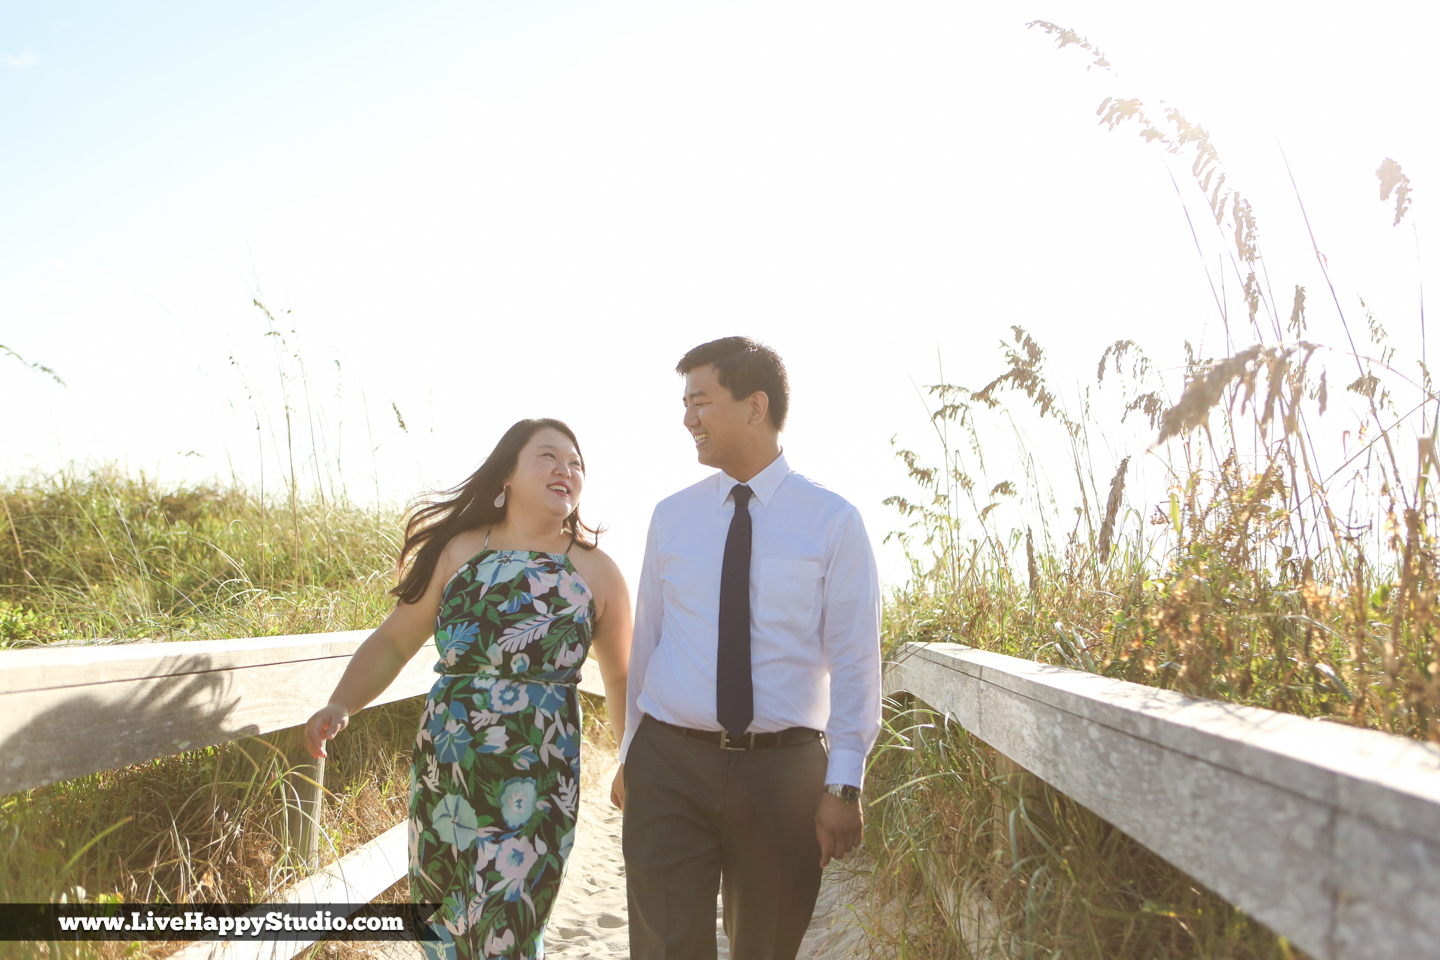 www.livehappystudio.com-engagement-wedding-photographer-orlando-fun-candid-portrait-cocoa-beach-5.jpg